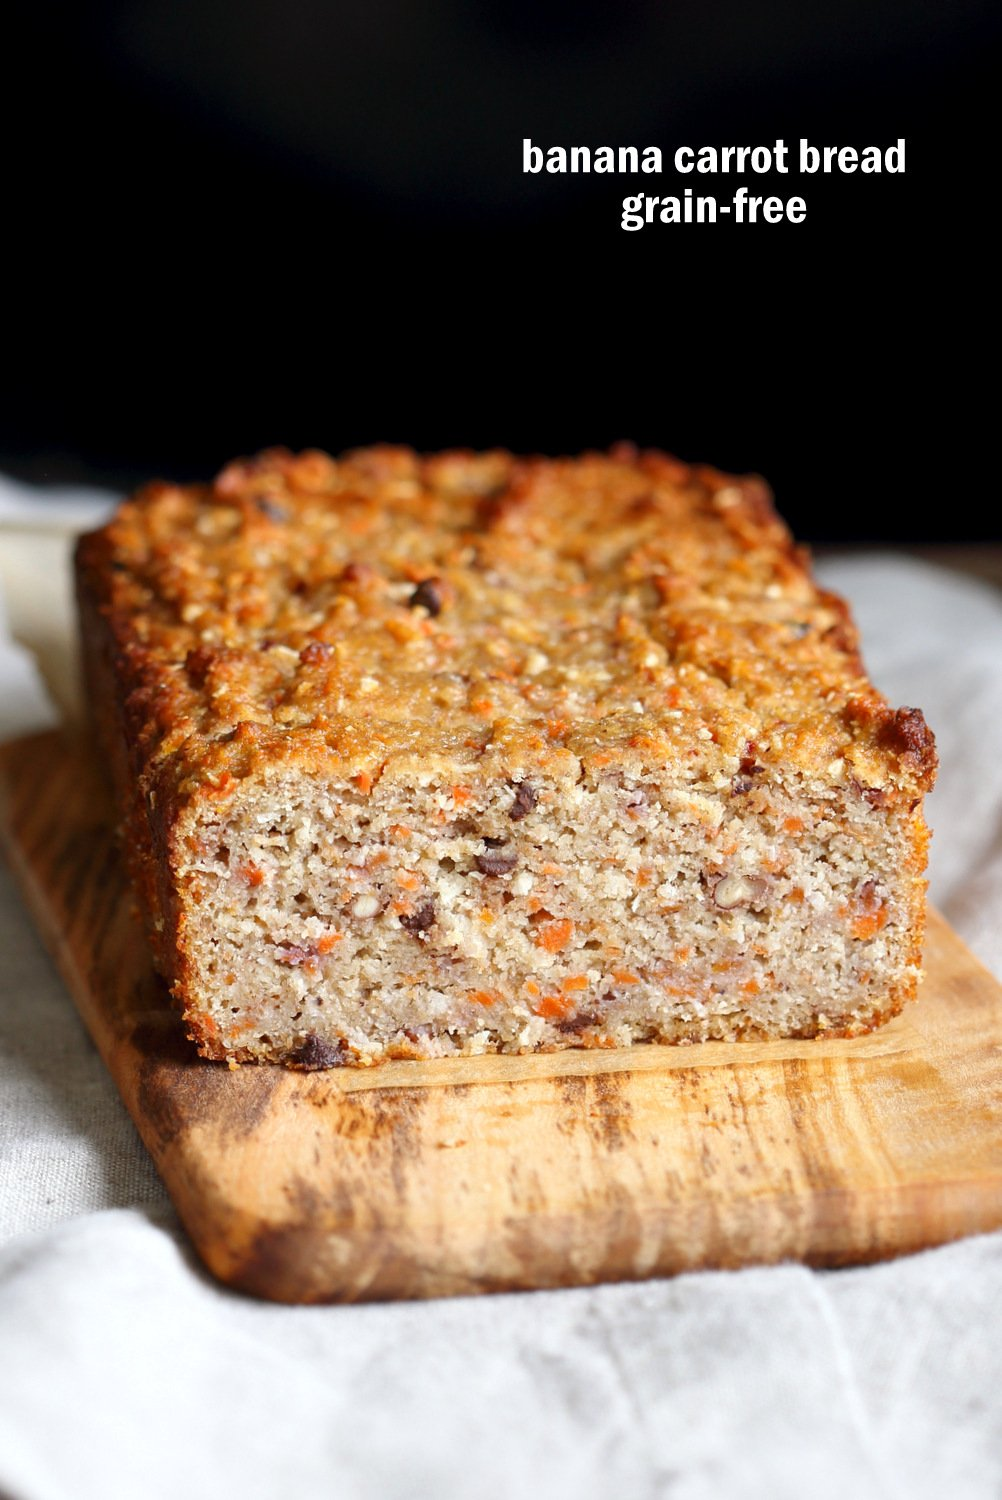 Vegan Gluten free Banana Bread. Grain-free Flourless Carrot Banana Bread. No Gum, no Aquafaba. #Vegan #grainfree #Glutenfree Soy-free #recipe. | VeganRicha.com